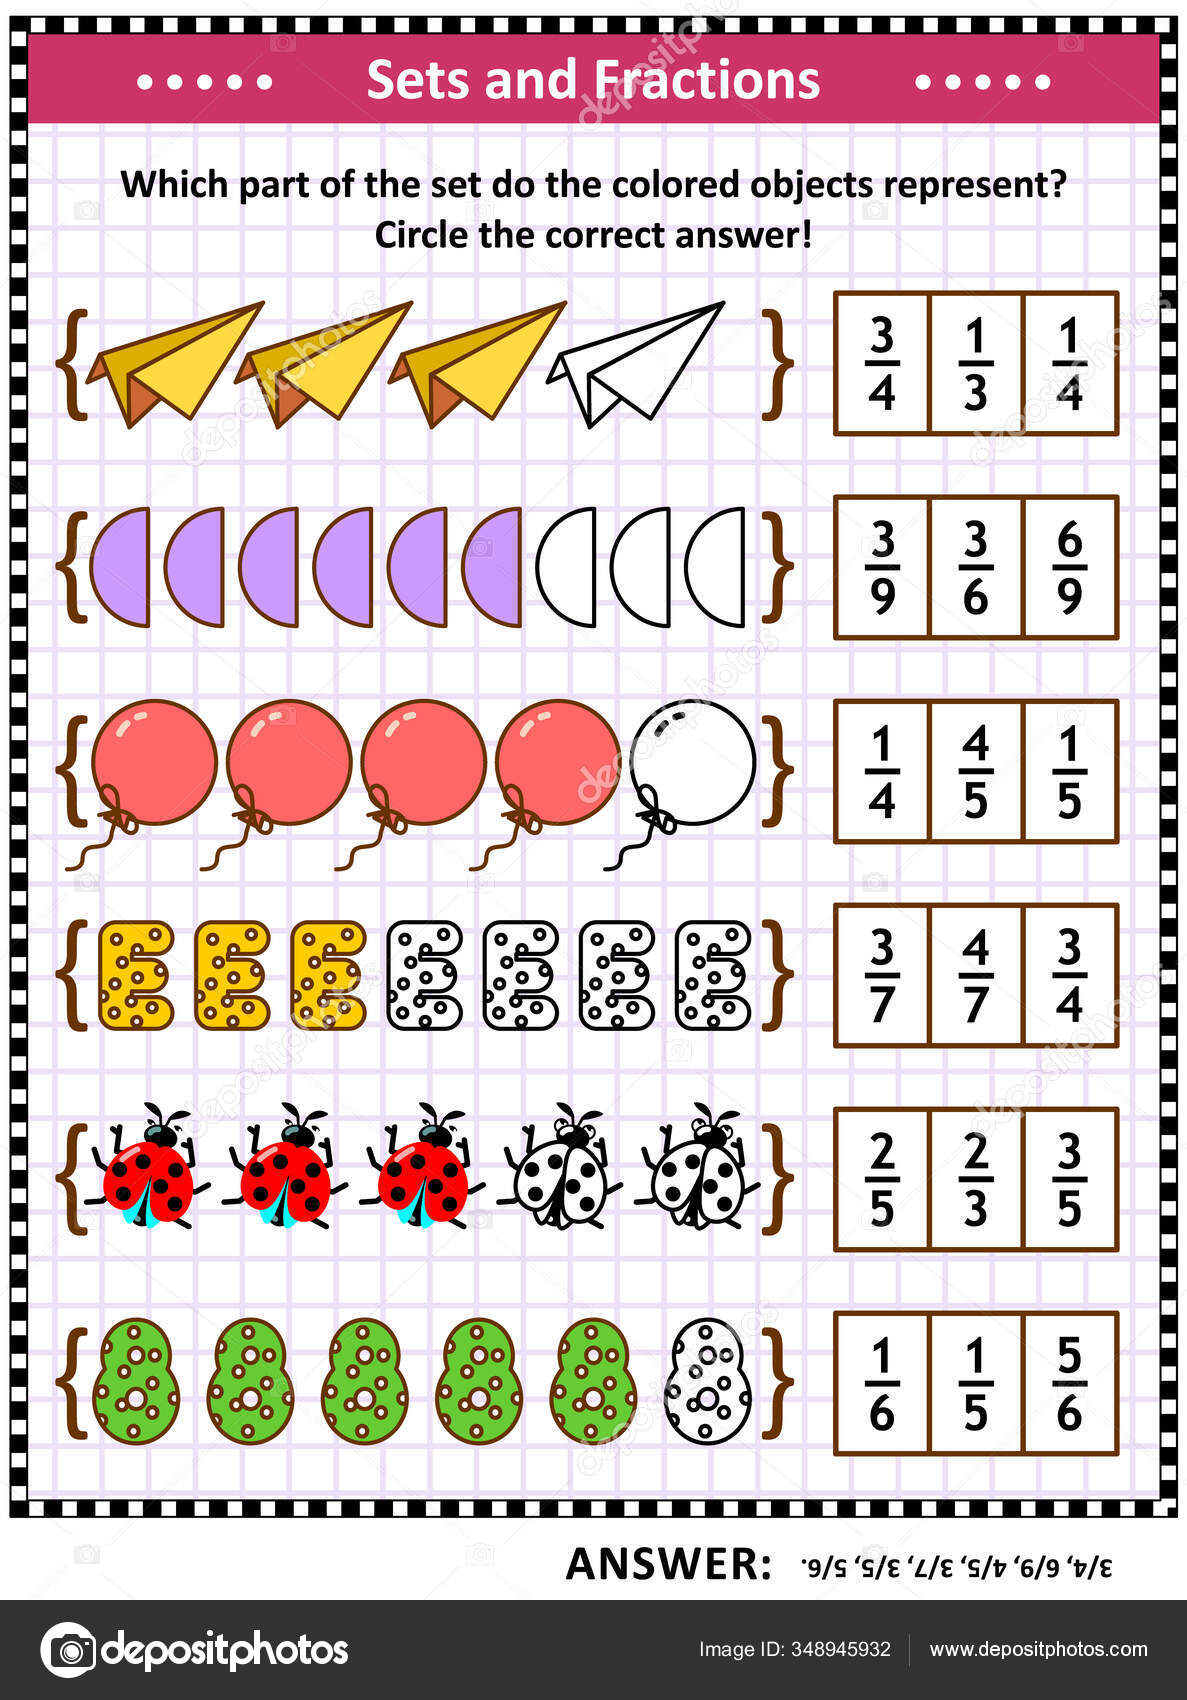 36 Equivalent Fractions Vectors Royalty Free Vector Equivalent Fractions Images Depositphotos [ 1700 x 1187 Pixel ]